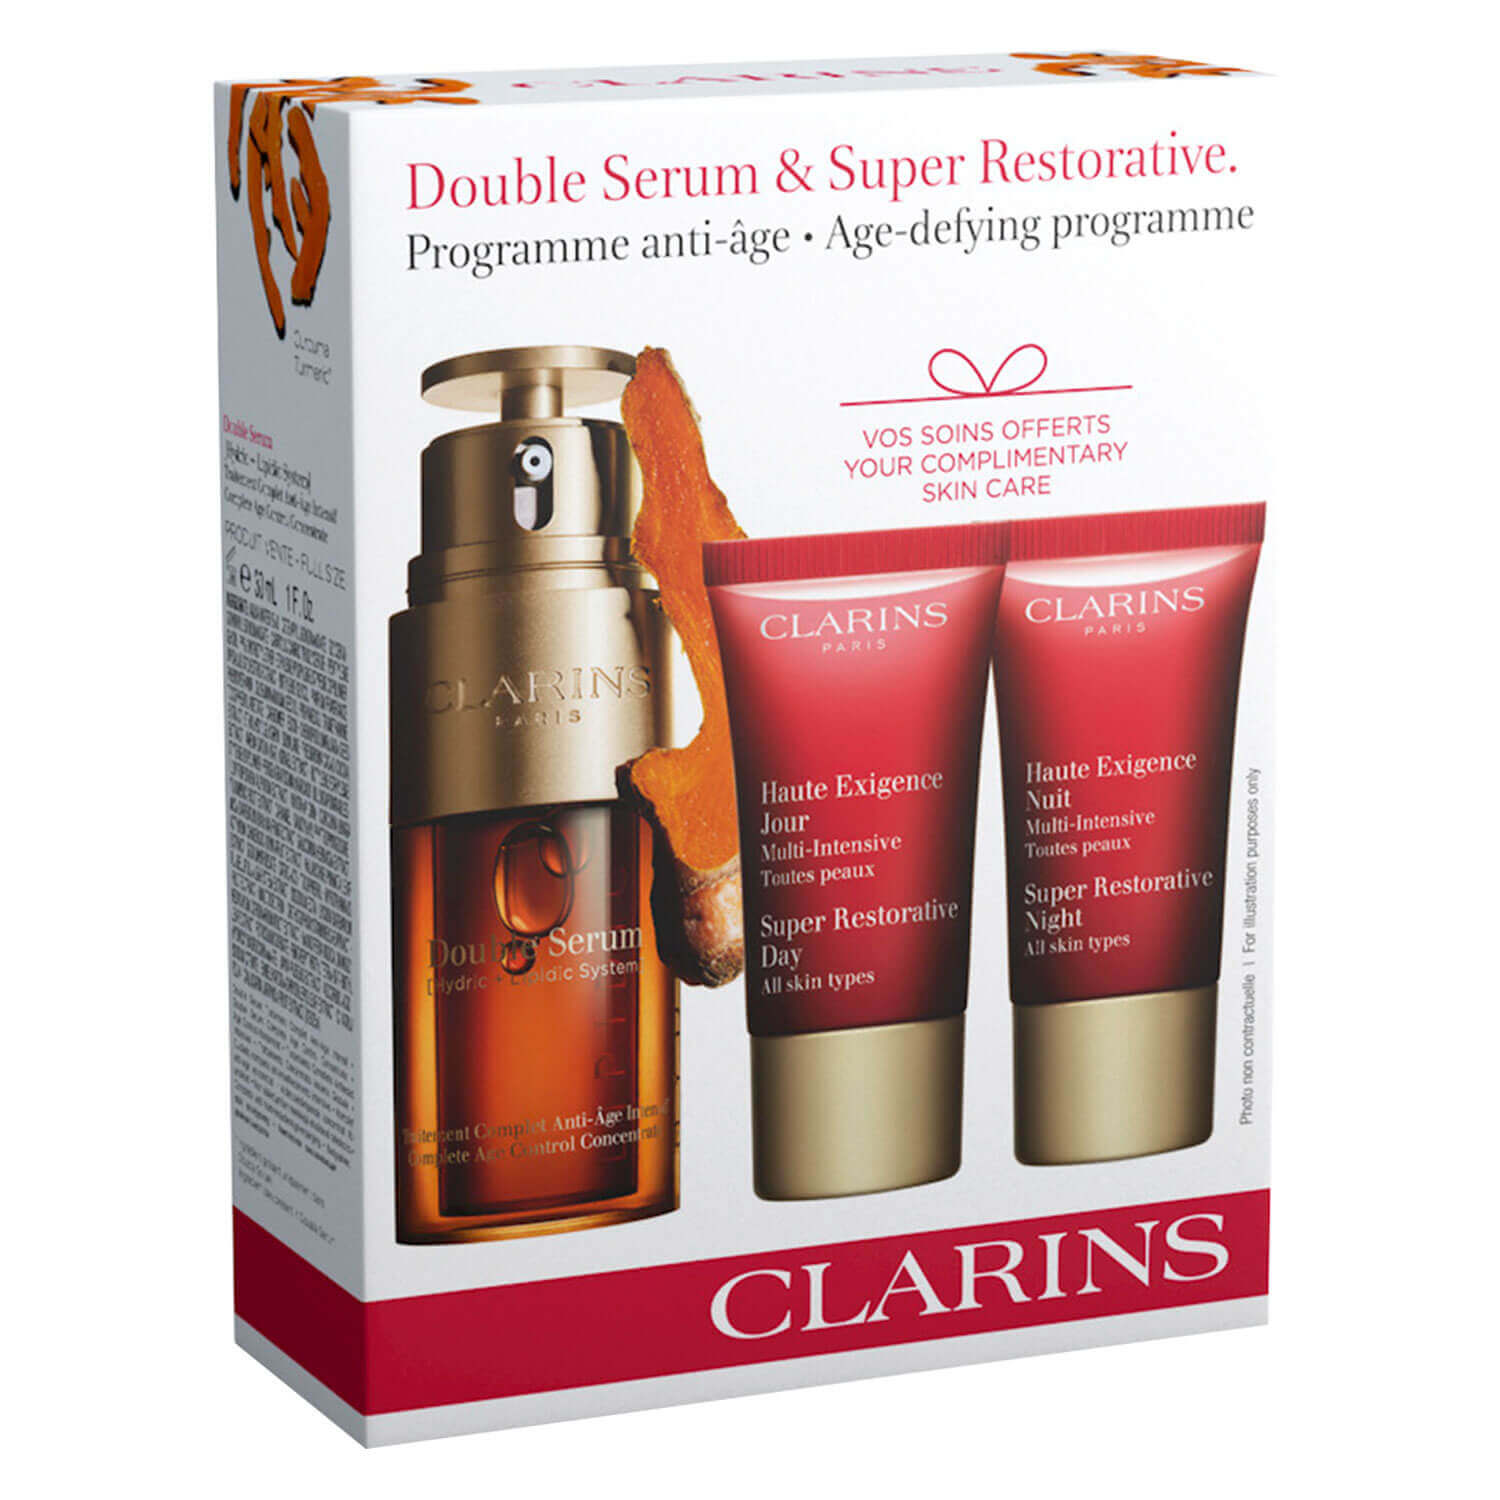 Clarins Specials - Double Serum & Super Restorative Set